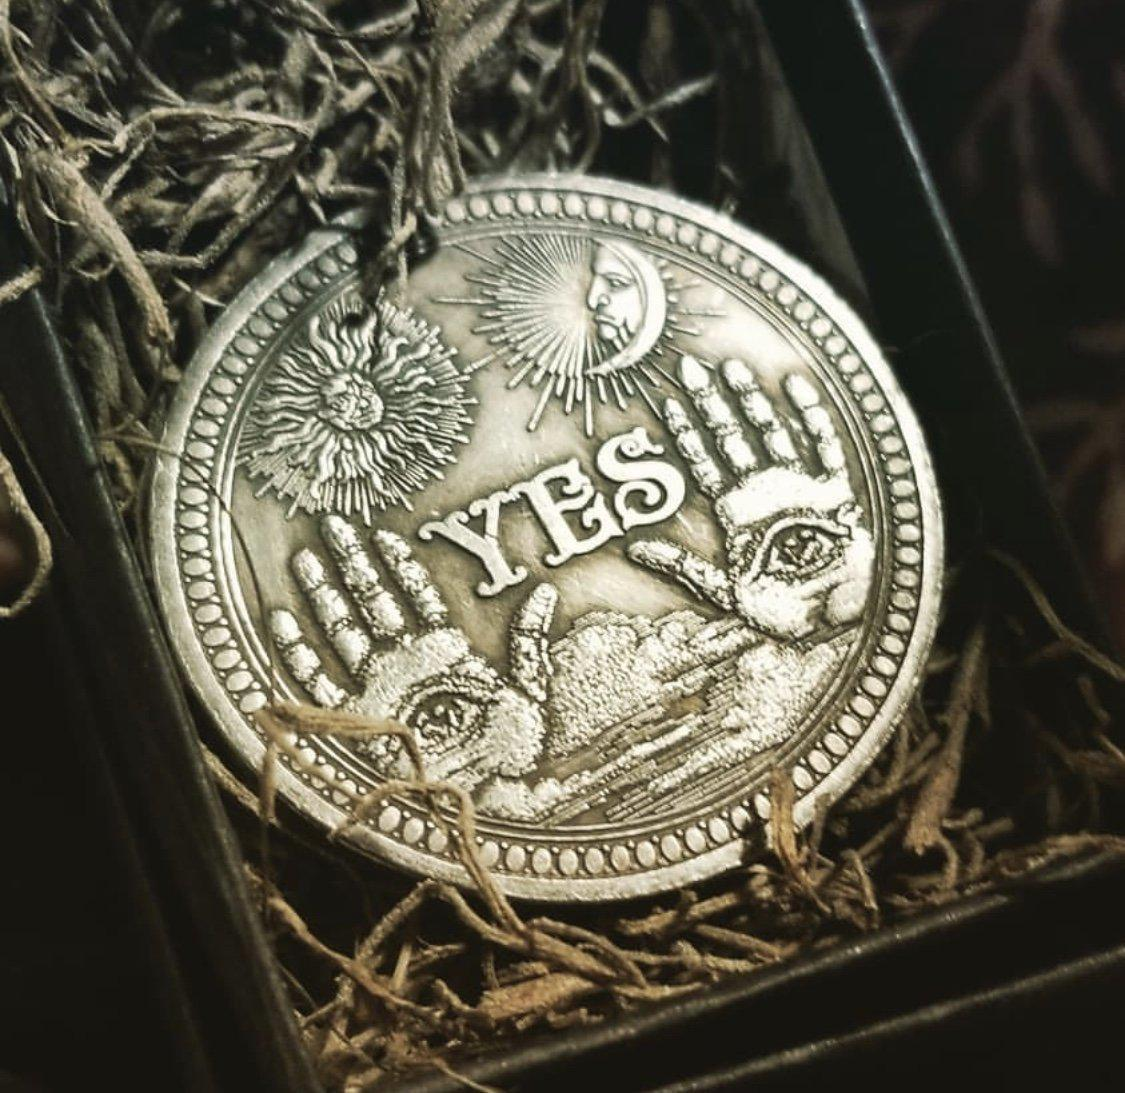 Divining Coin, divining coin - SugarMuses